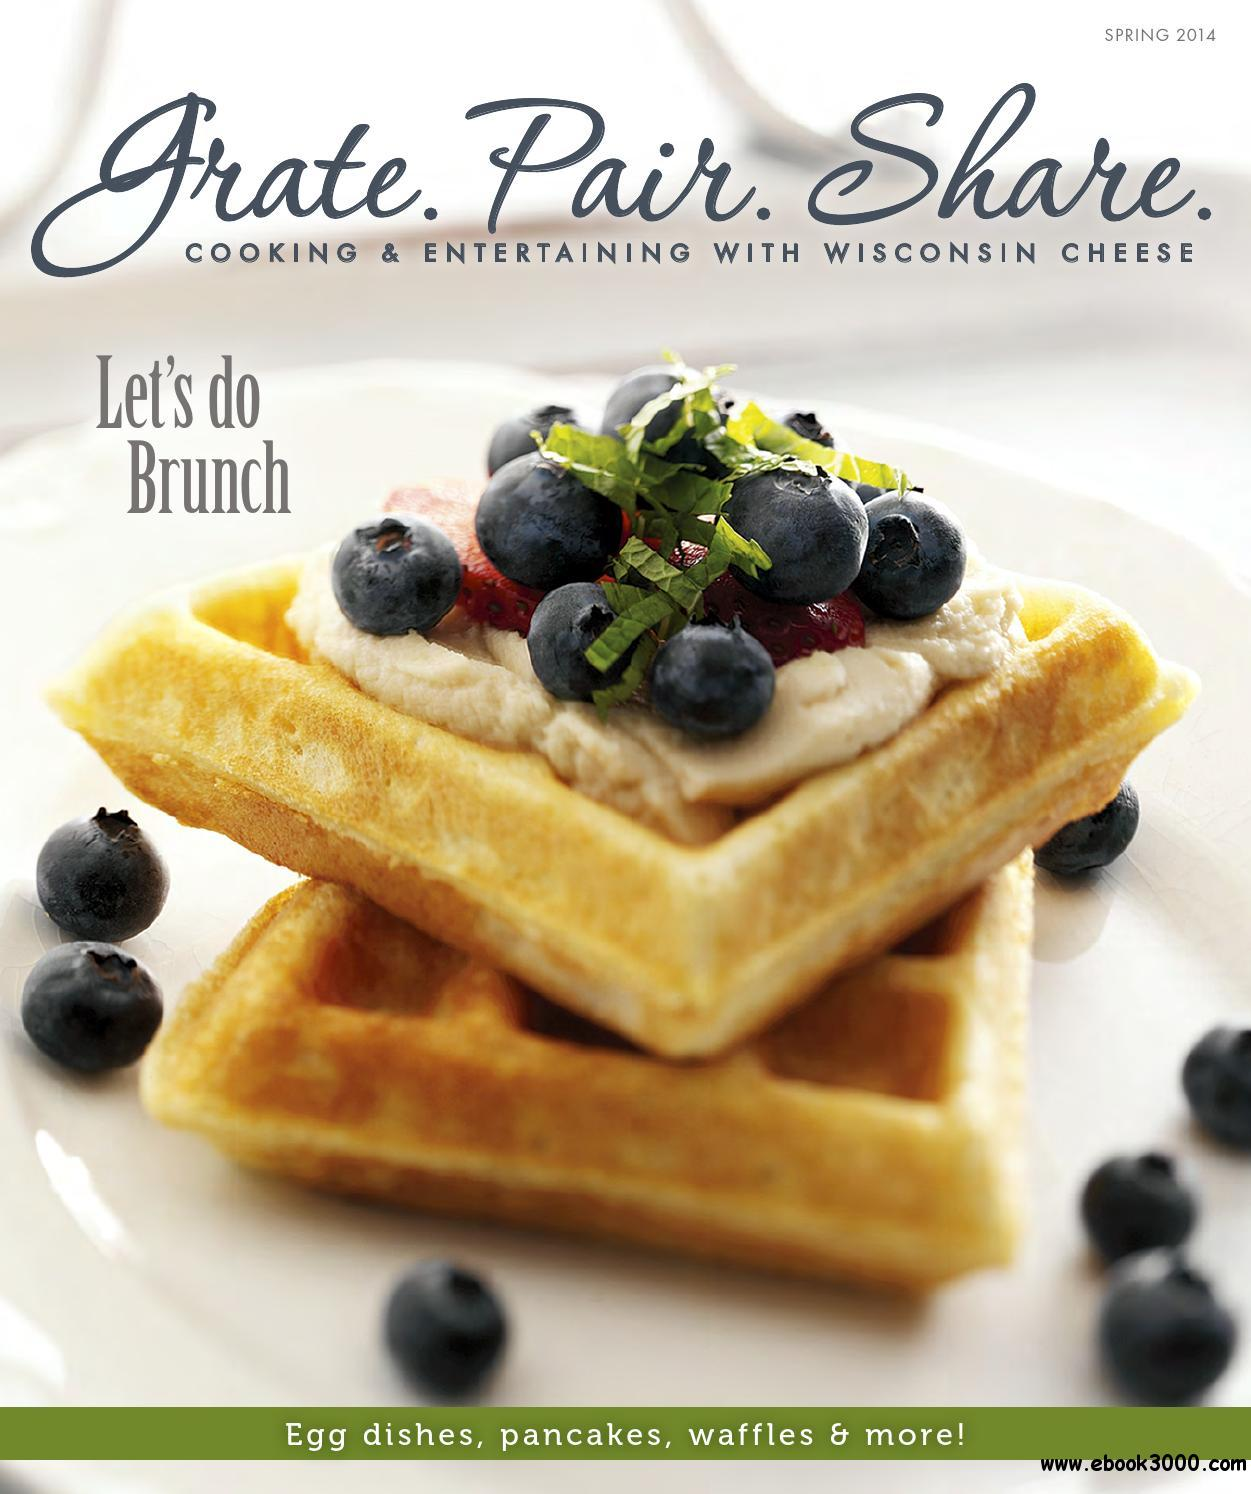 Grate. Pair. Share - Spring 2014 free download